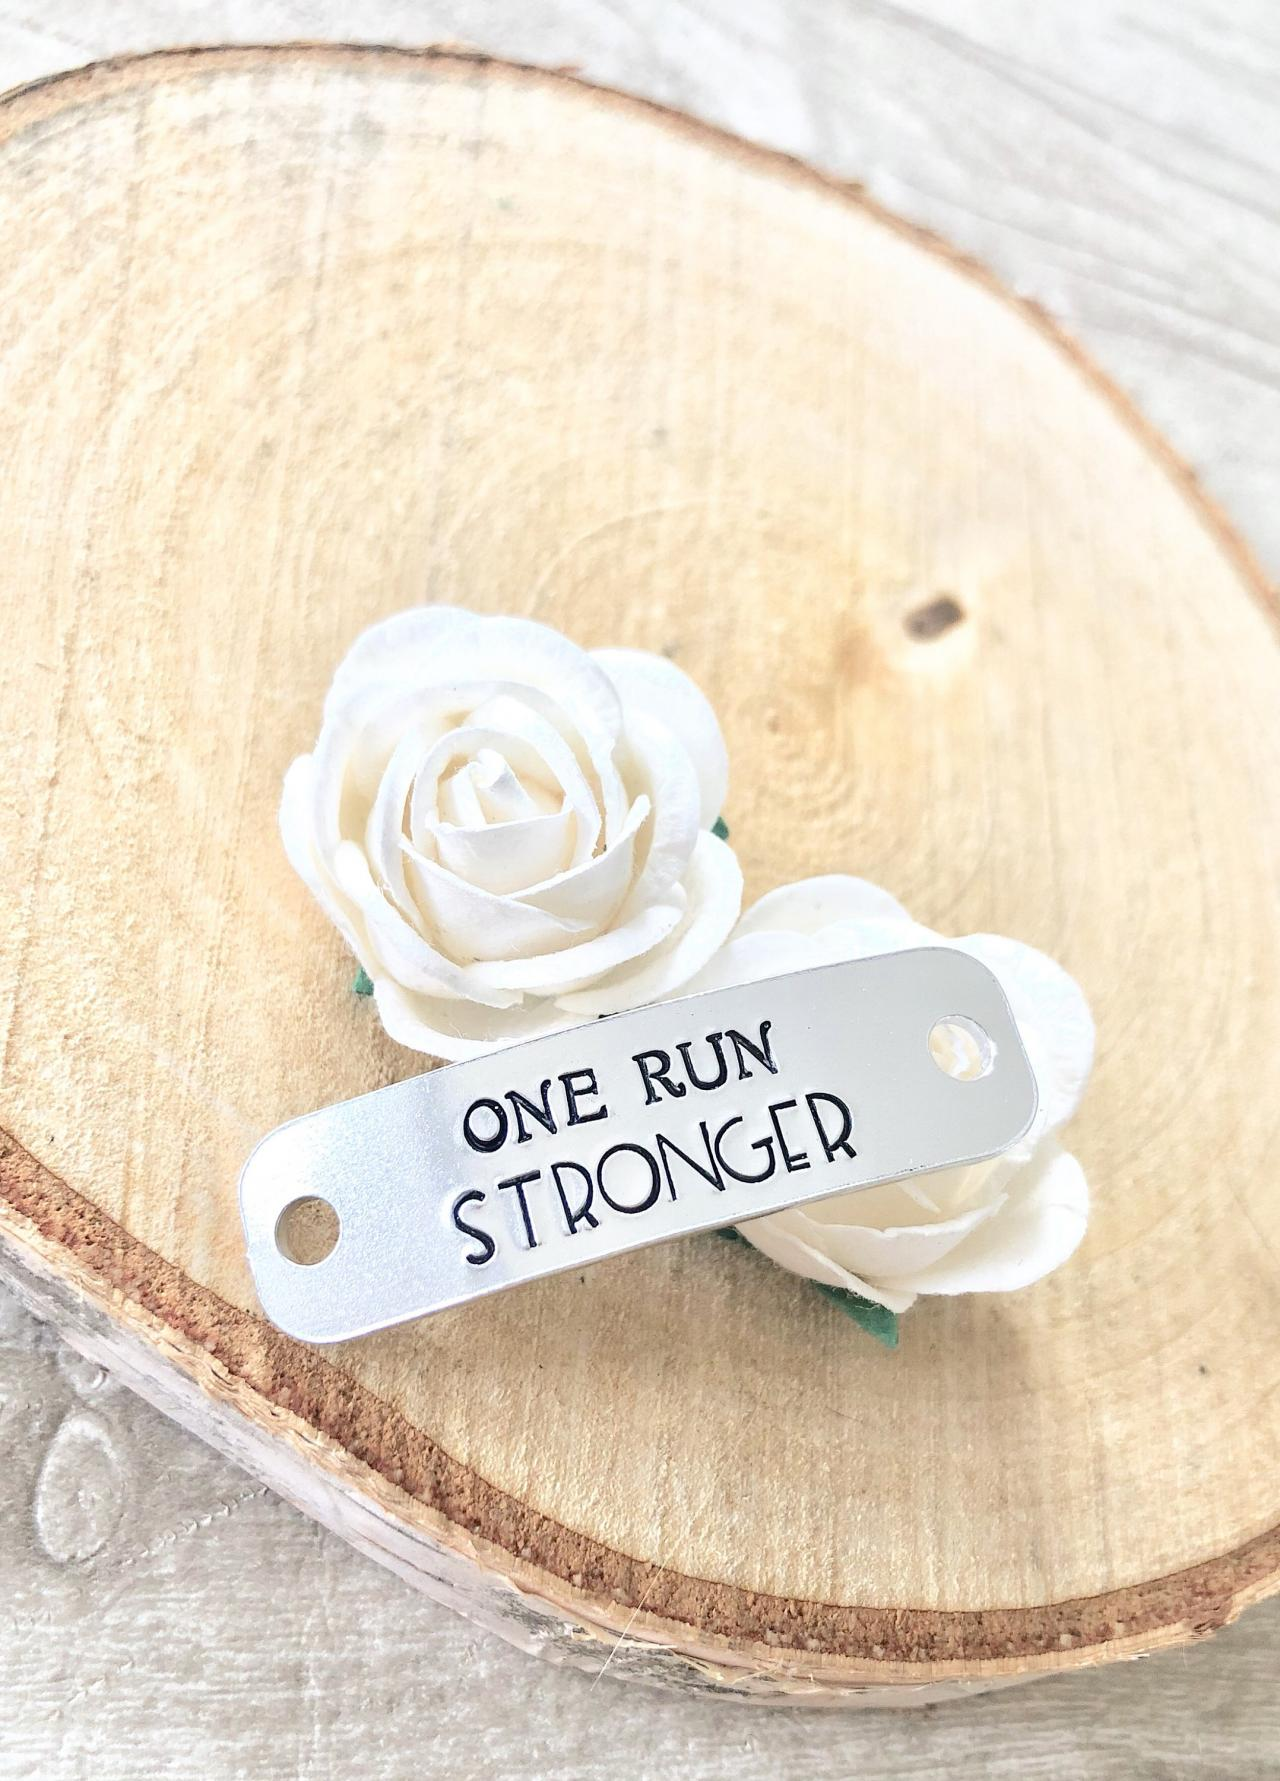 One Run Stronger, Trainer Tags, Running Gift, Runner Gift, Gym Accessory, Gym Lover, Shoe Tags, Shoe Laces, Motivational Gift,